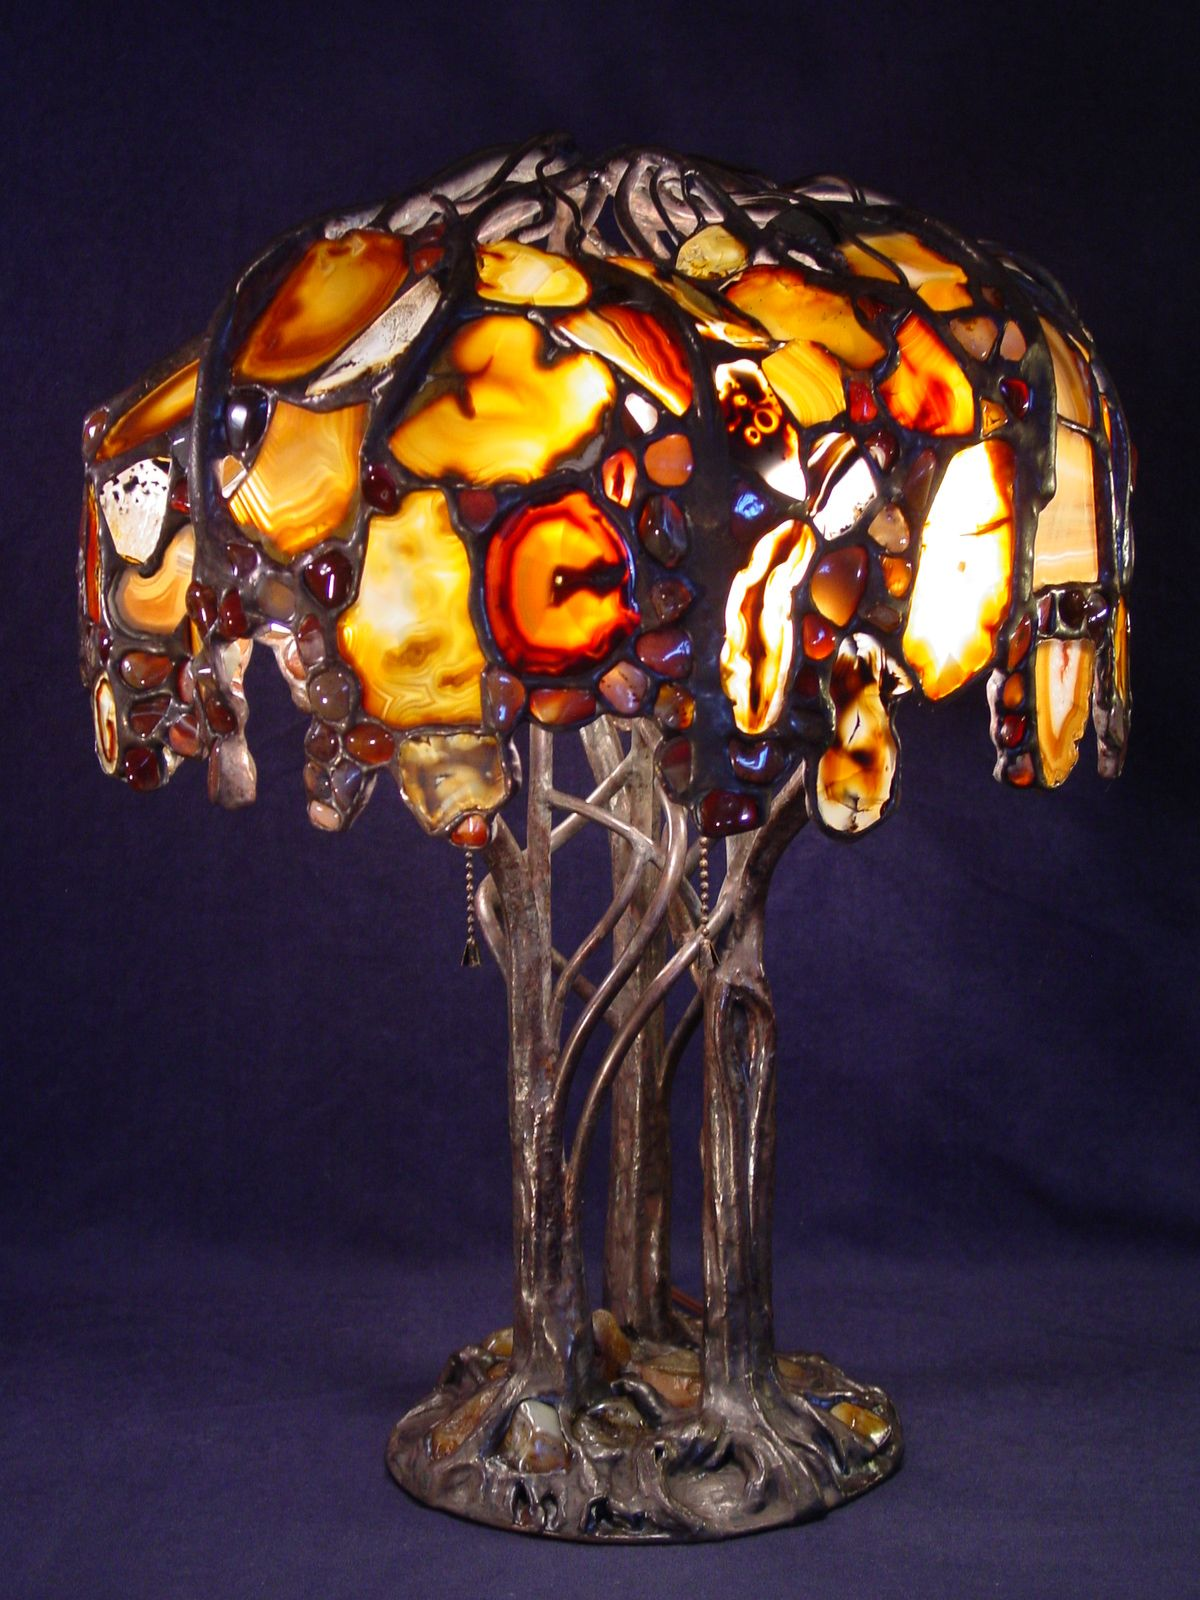 One Day Iu0027ll Have One Of Greg Rosenbergu0027s Agate Lamps.